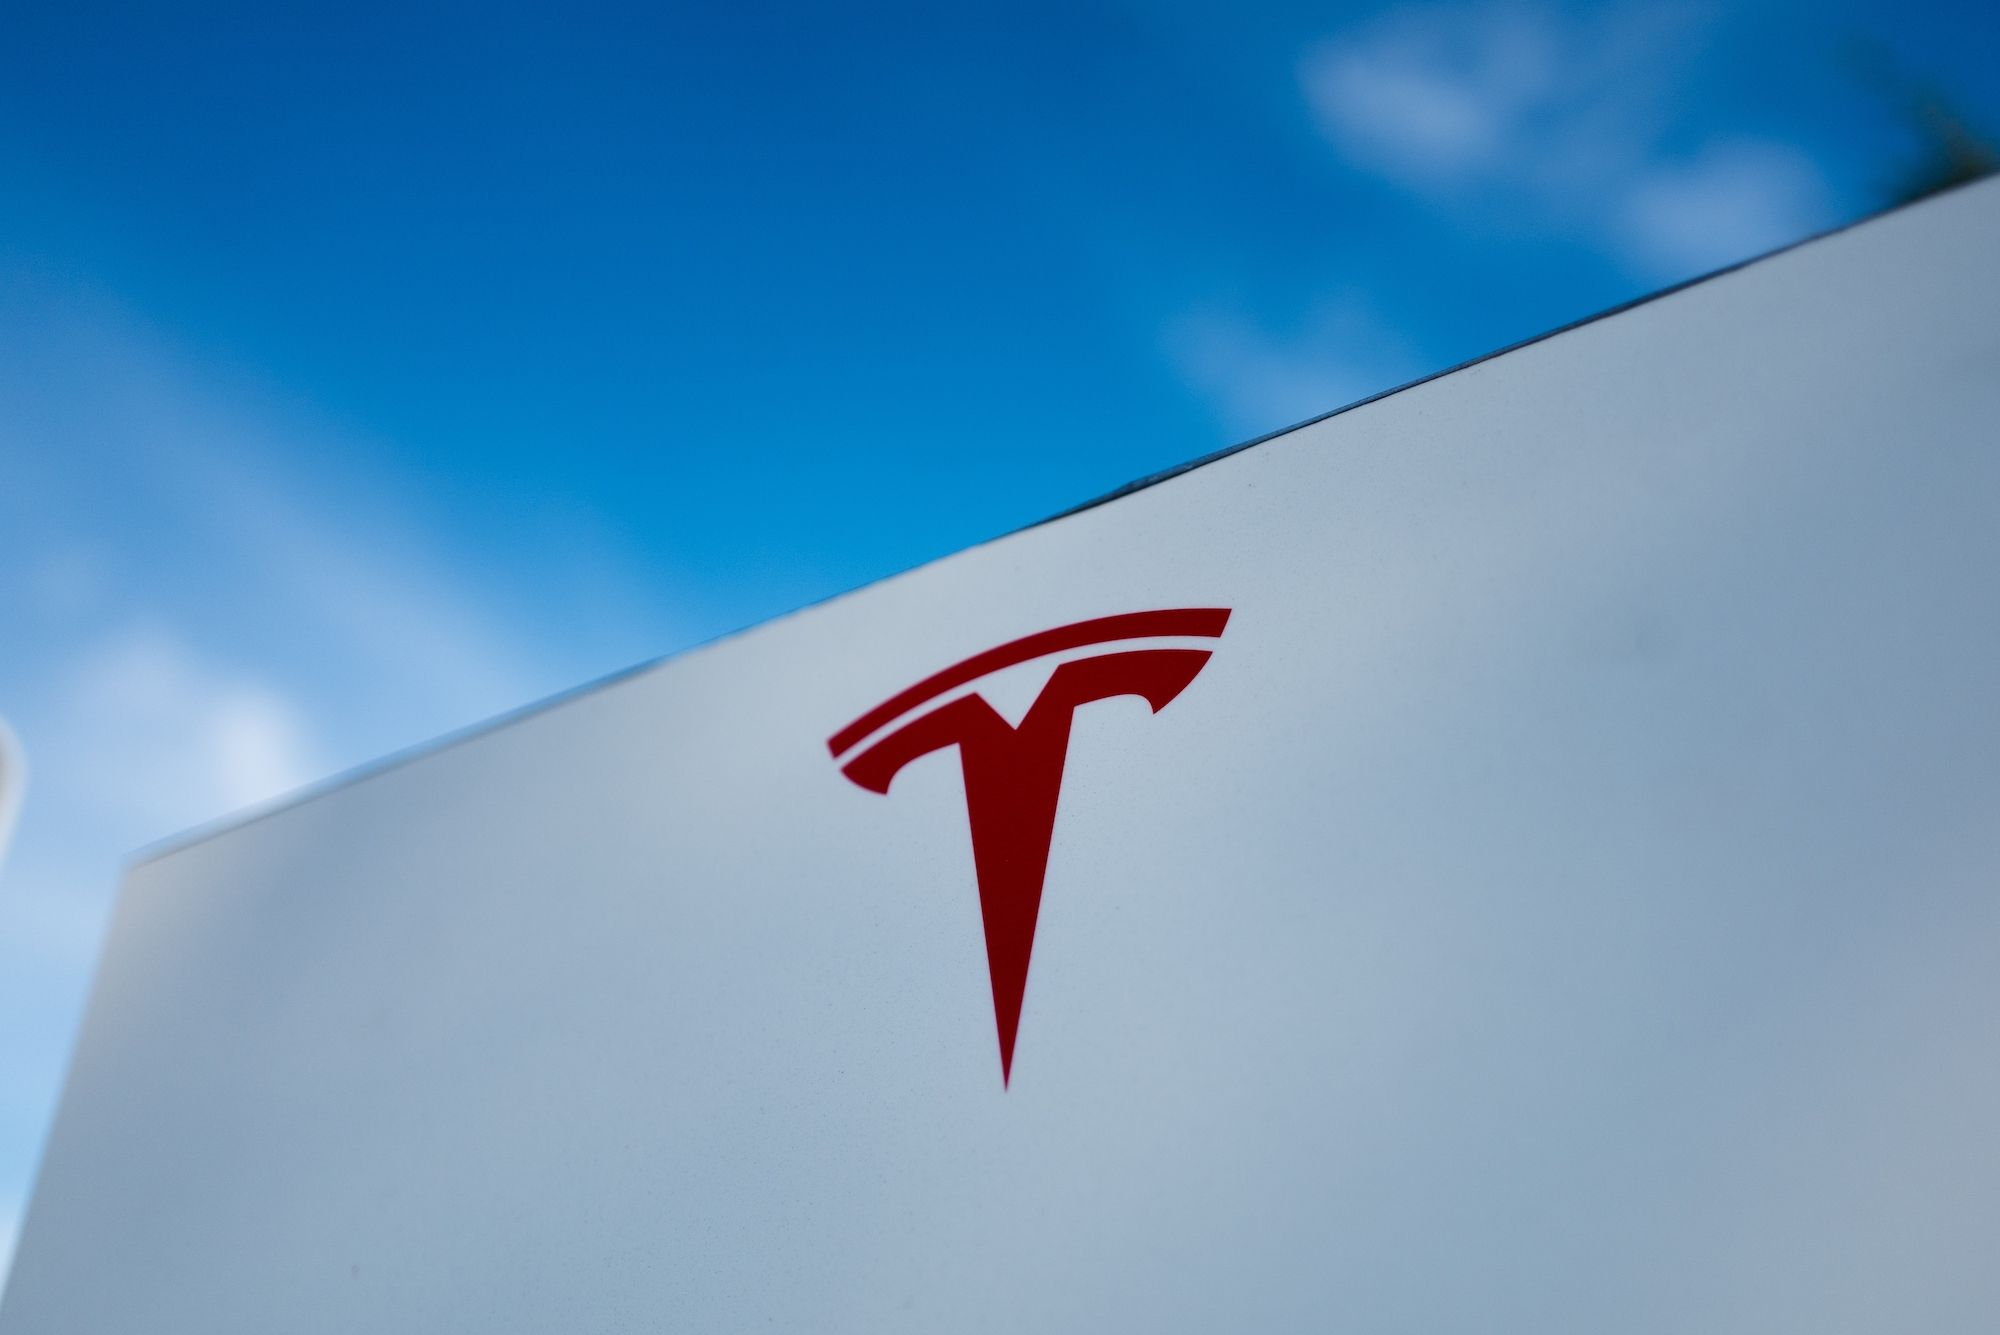 Tesla Will Join The S&P 500 Stock Index In December 2020